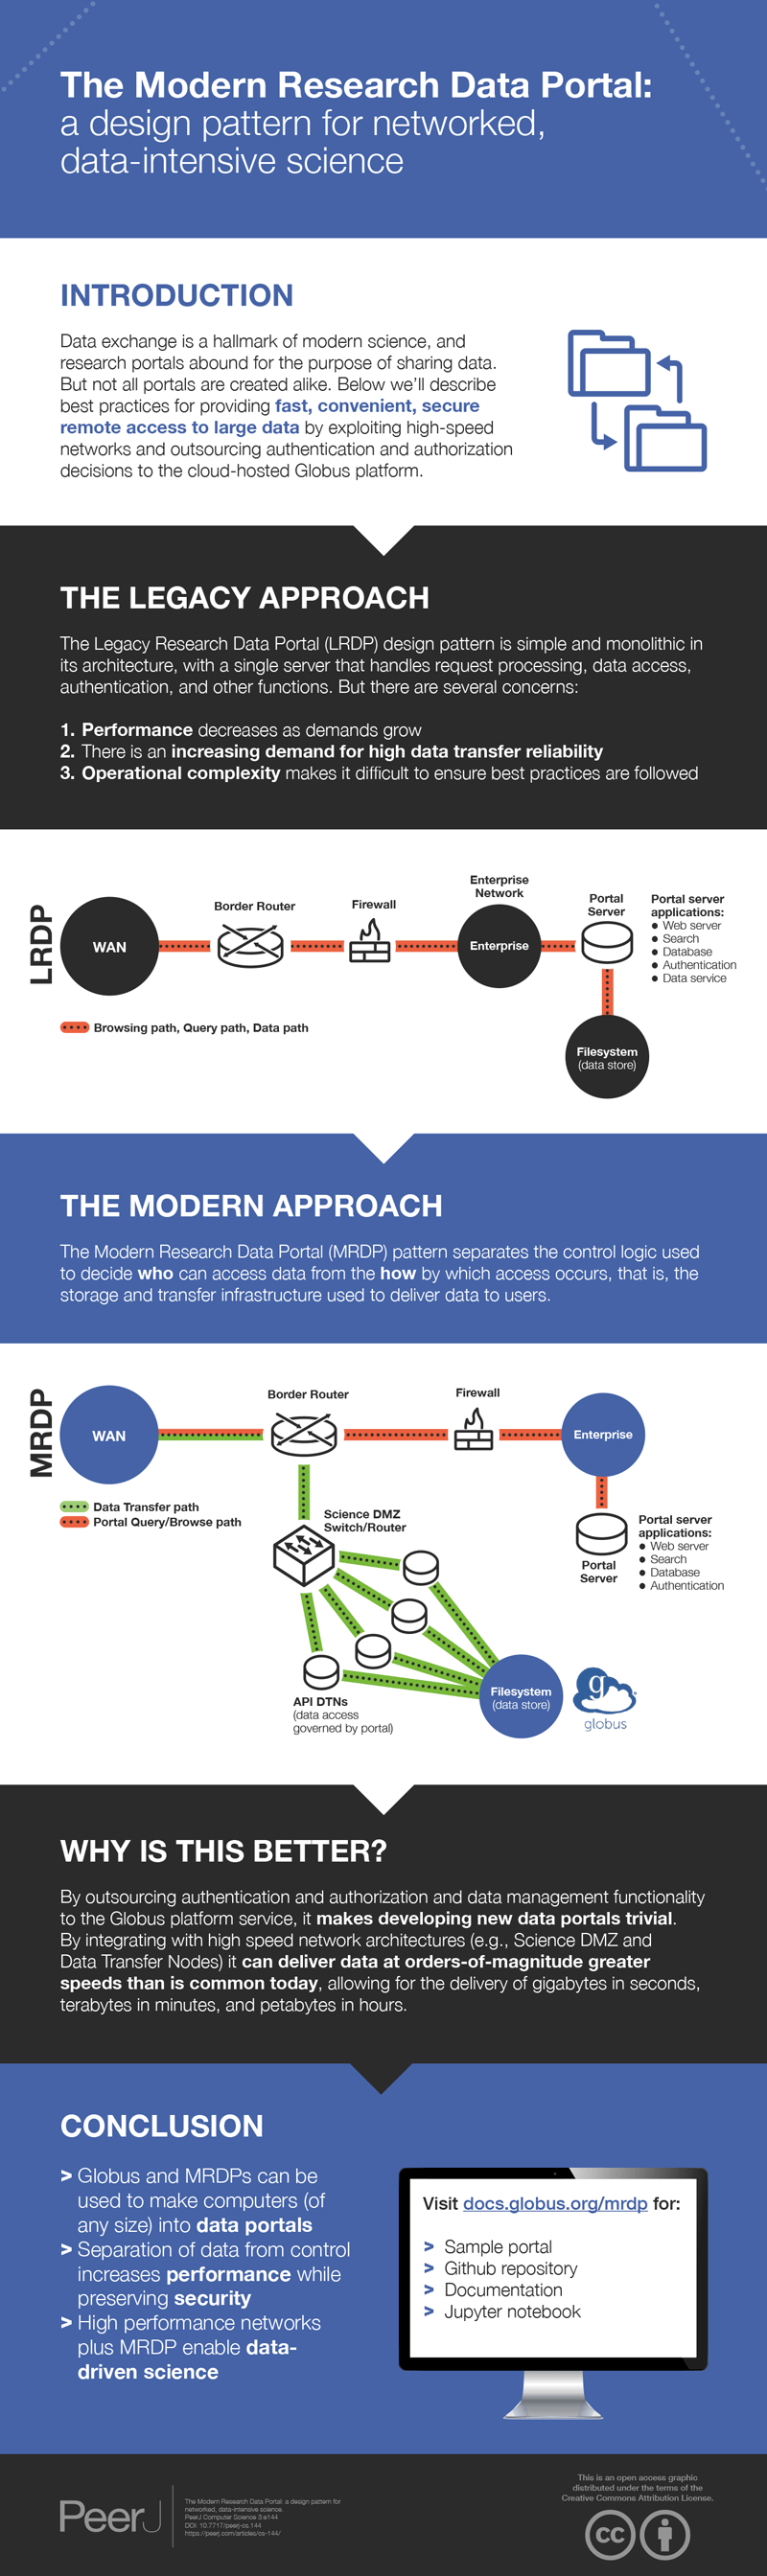 Infographic: Building a Modern Research Data Portal